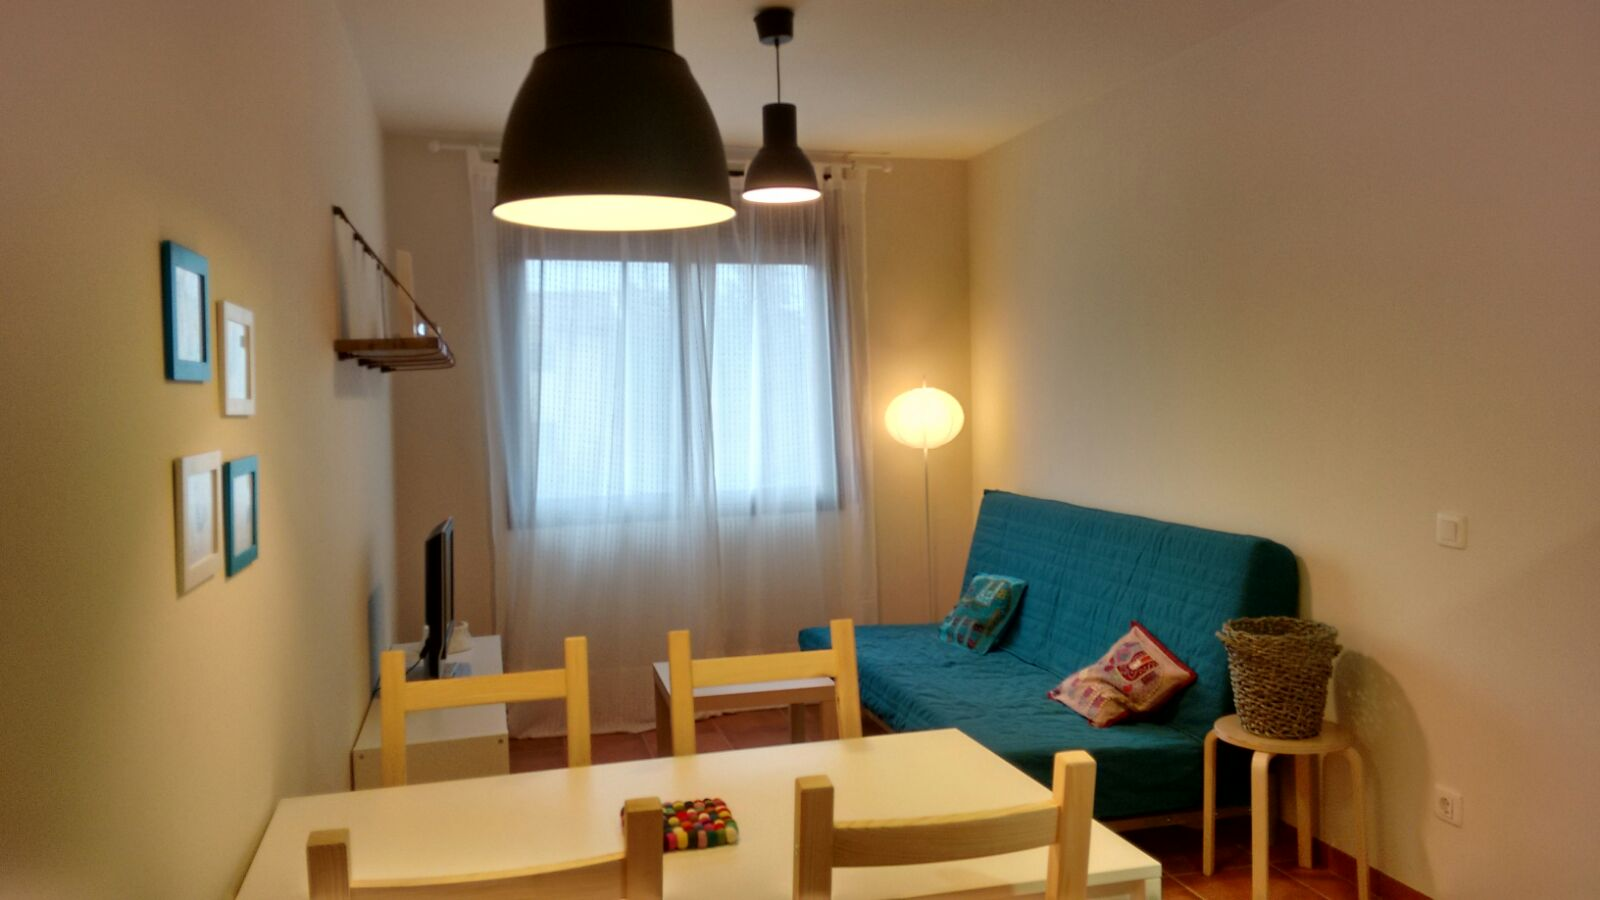 GEMMA APARTMENT, CORNUDELLA DE MONTSANT    2 rooms 4 people